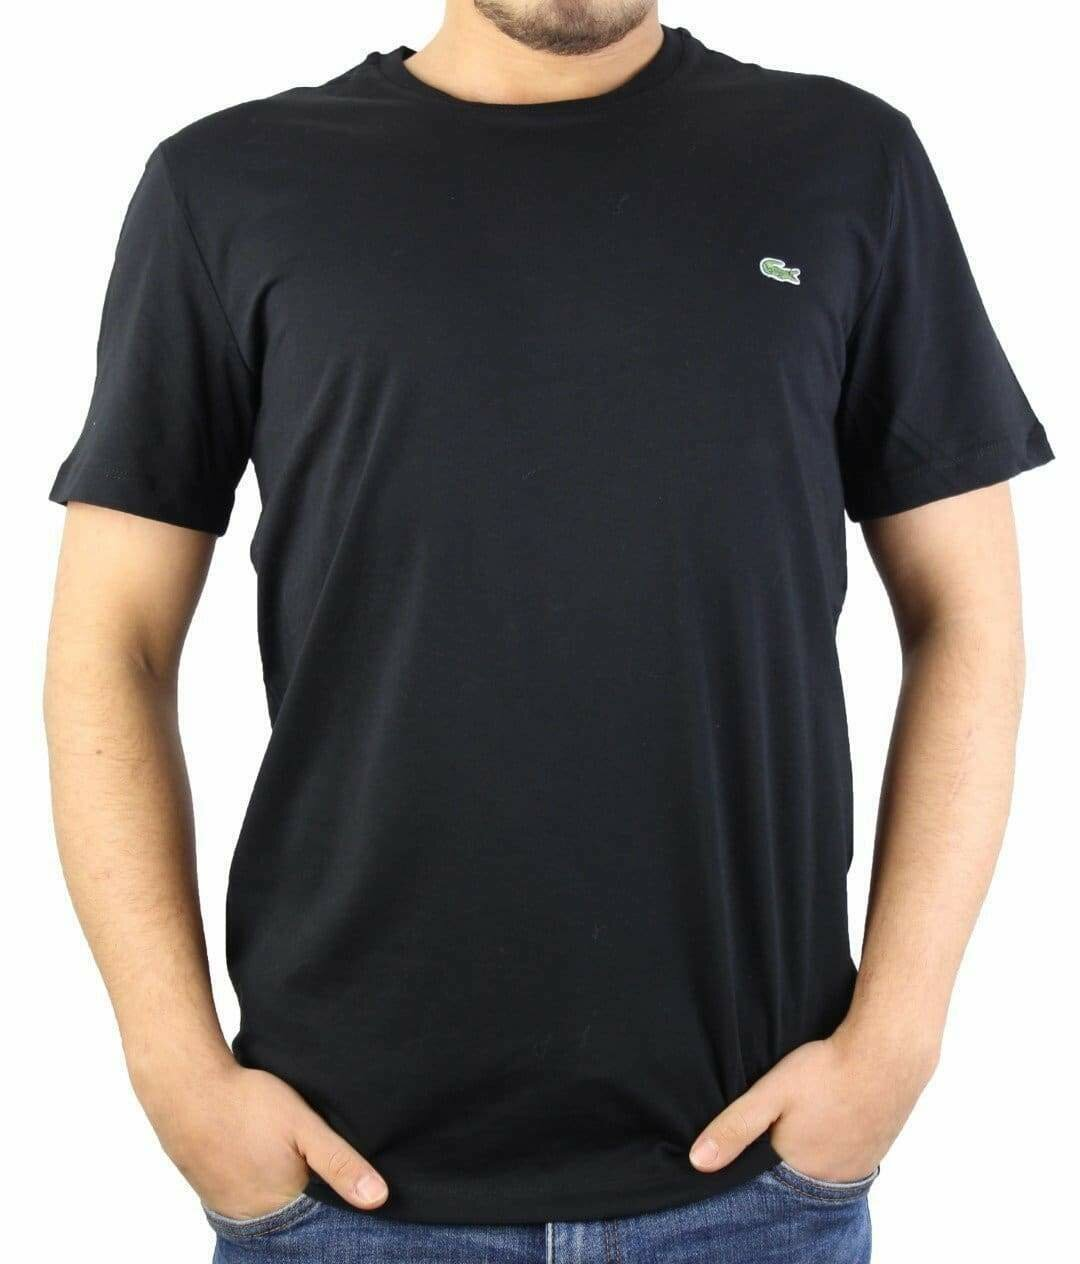 Lacoste Men's T-Shirt  Crew Neck Black